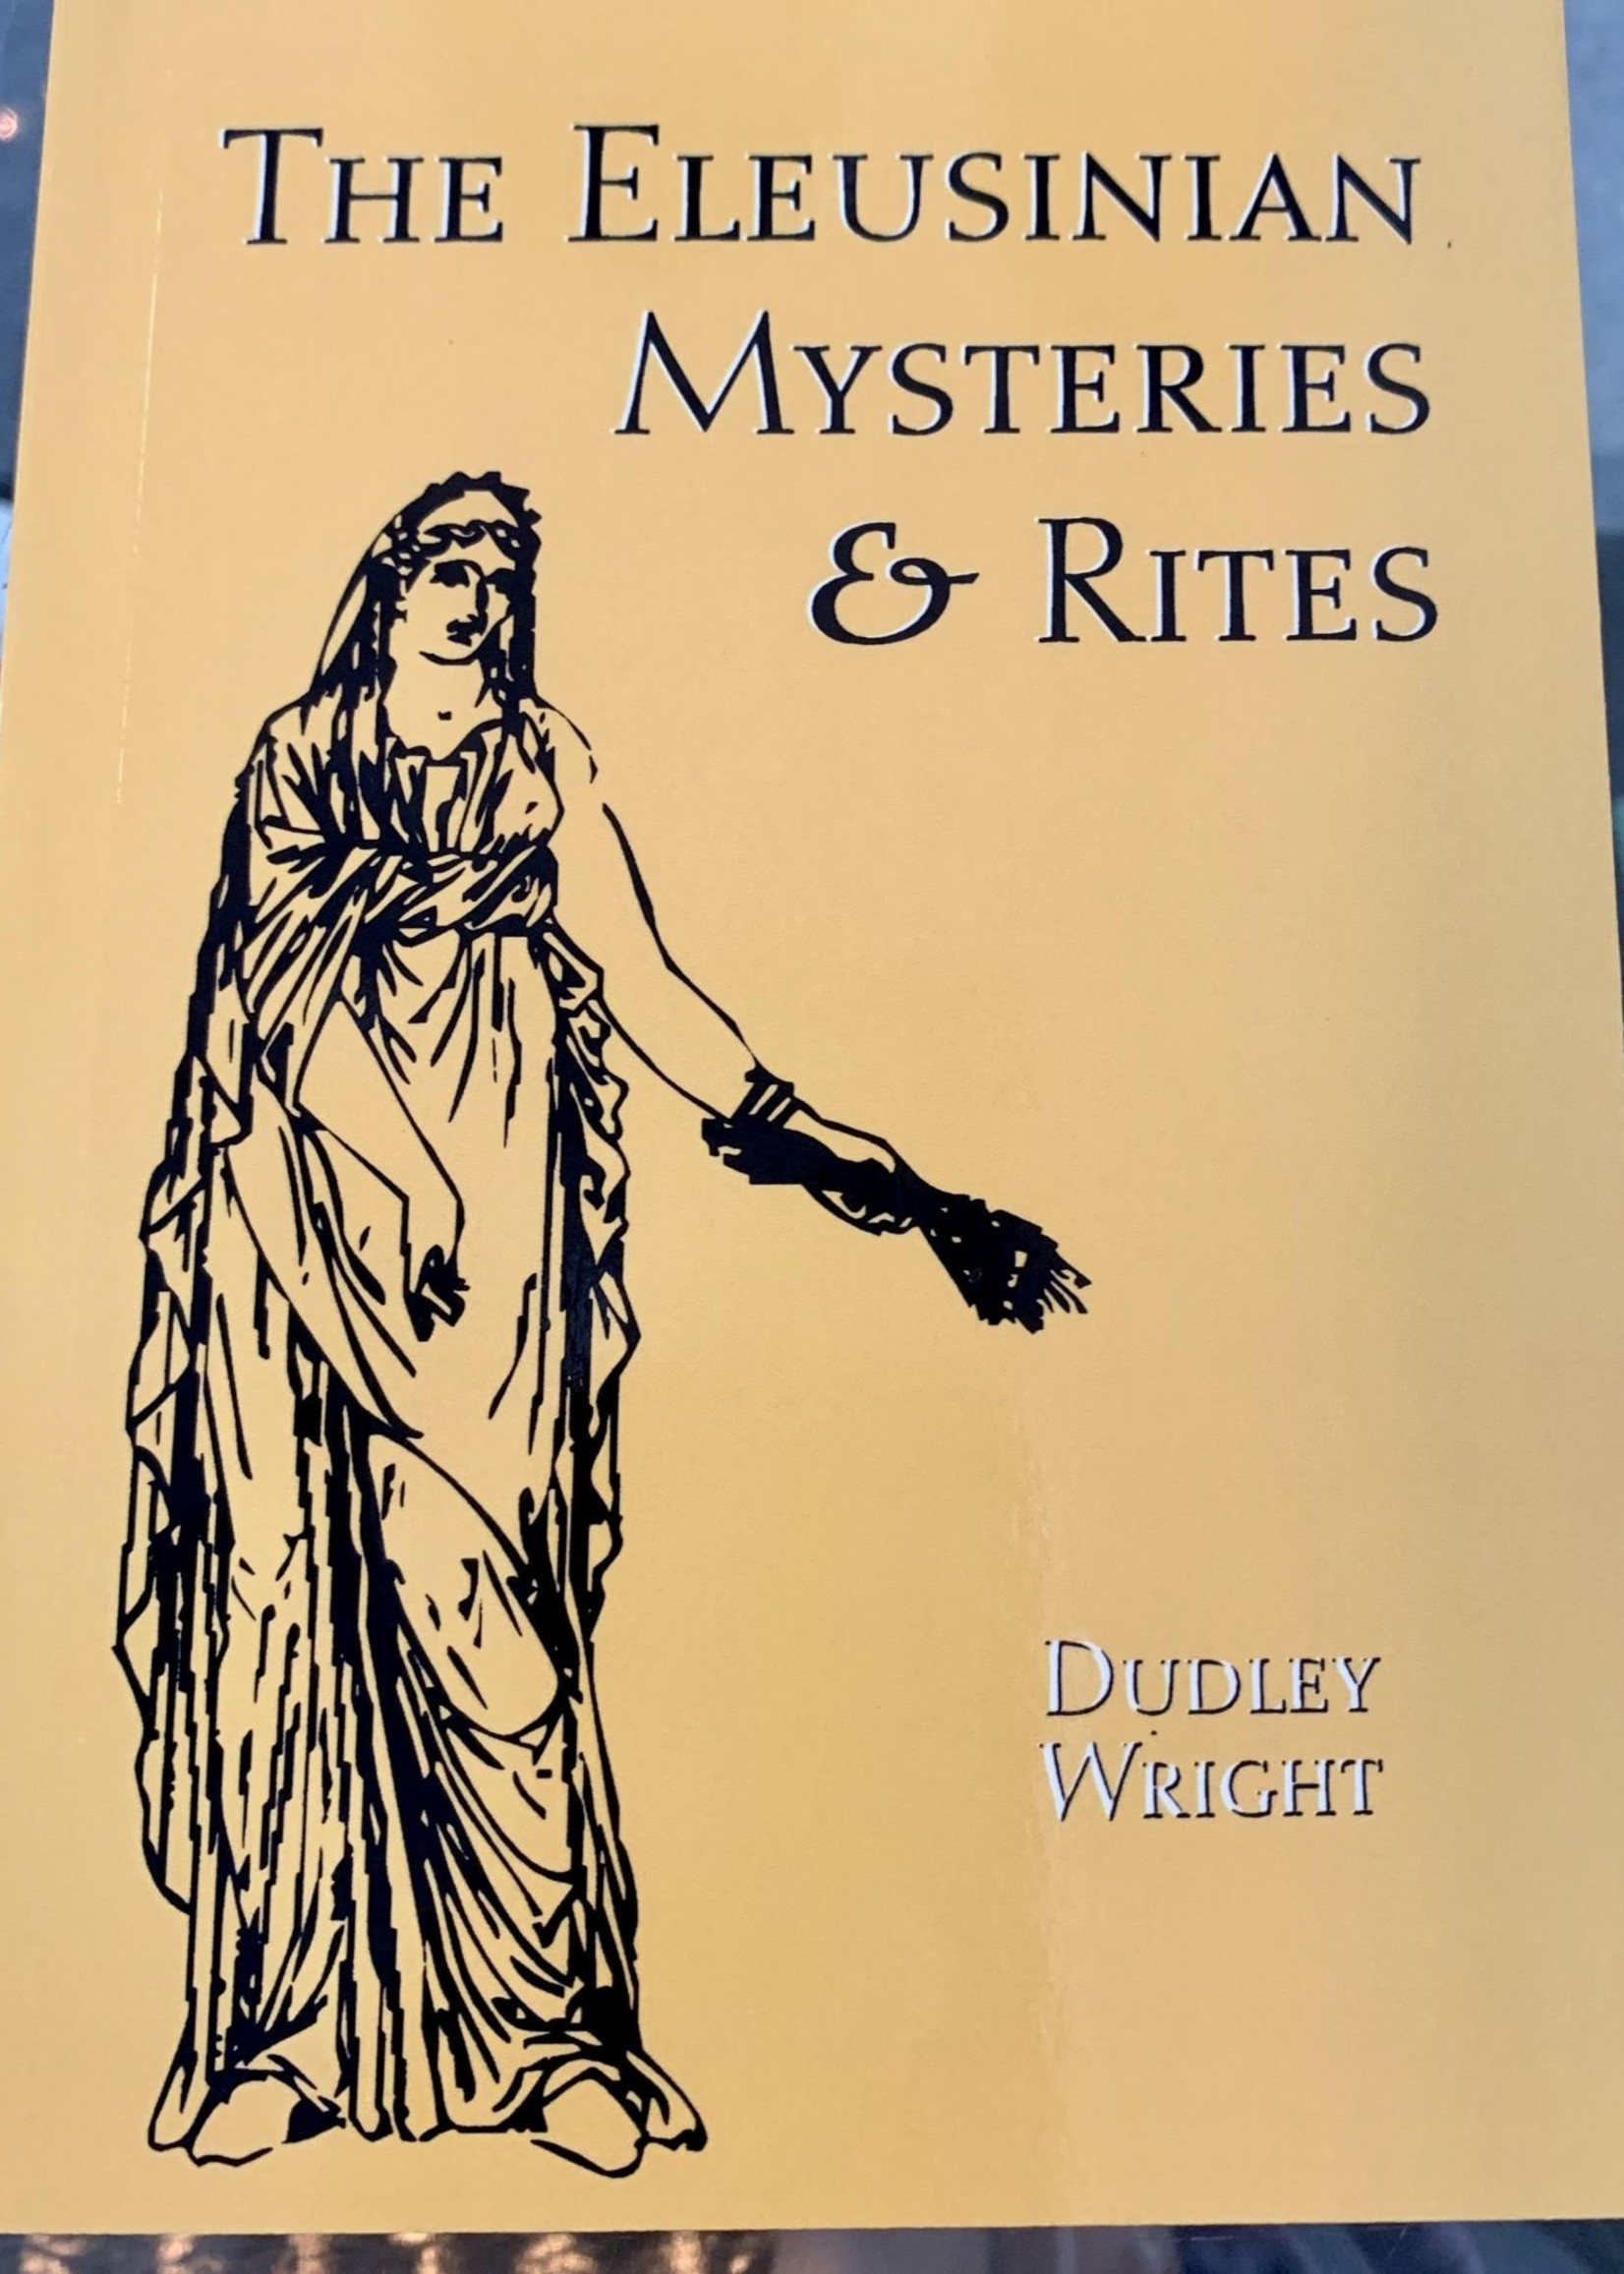 The Eleusinian Mysteries and Rites - Dudley Wright